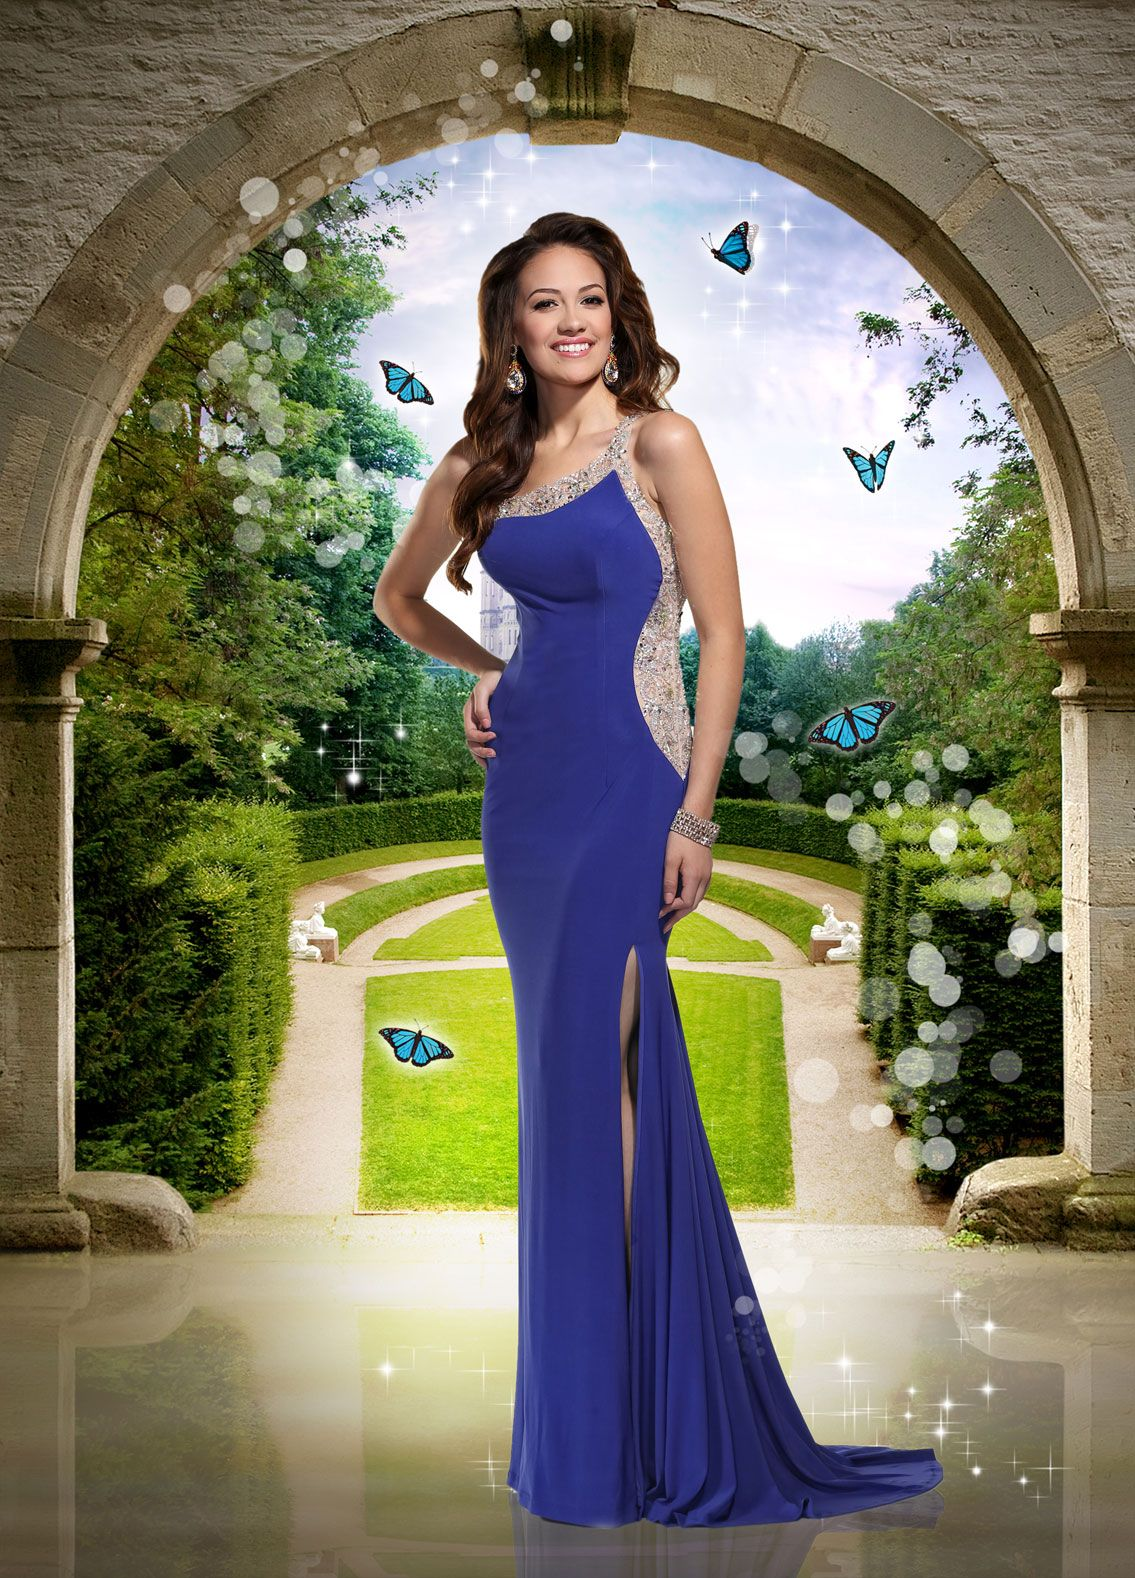 Disney forever enchanted prom dresses xcite and xtreme prom